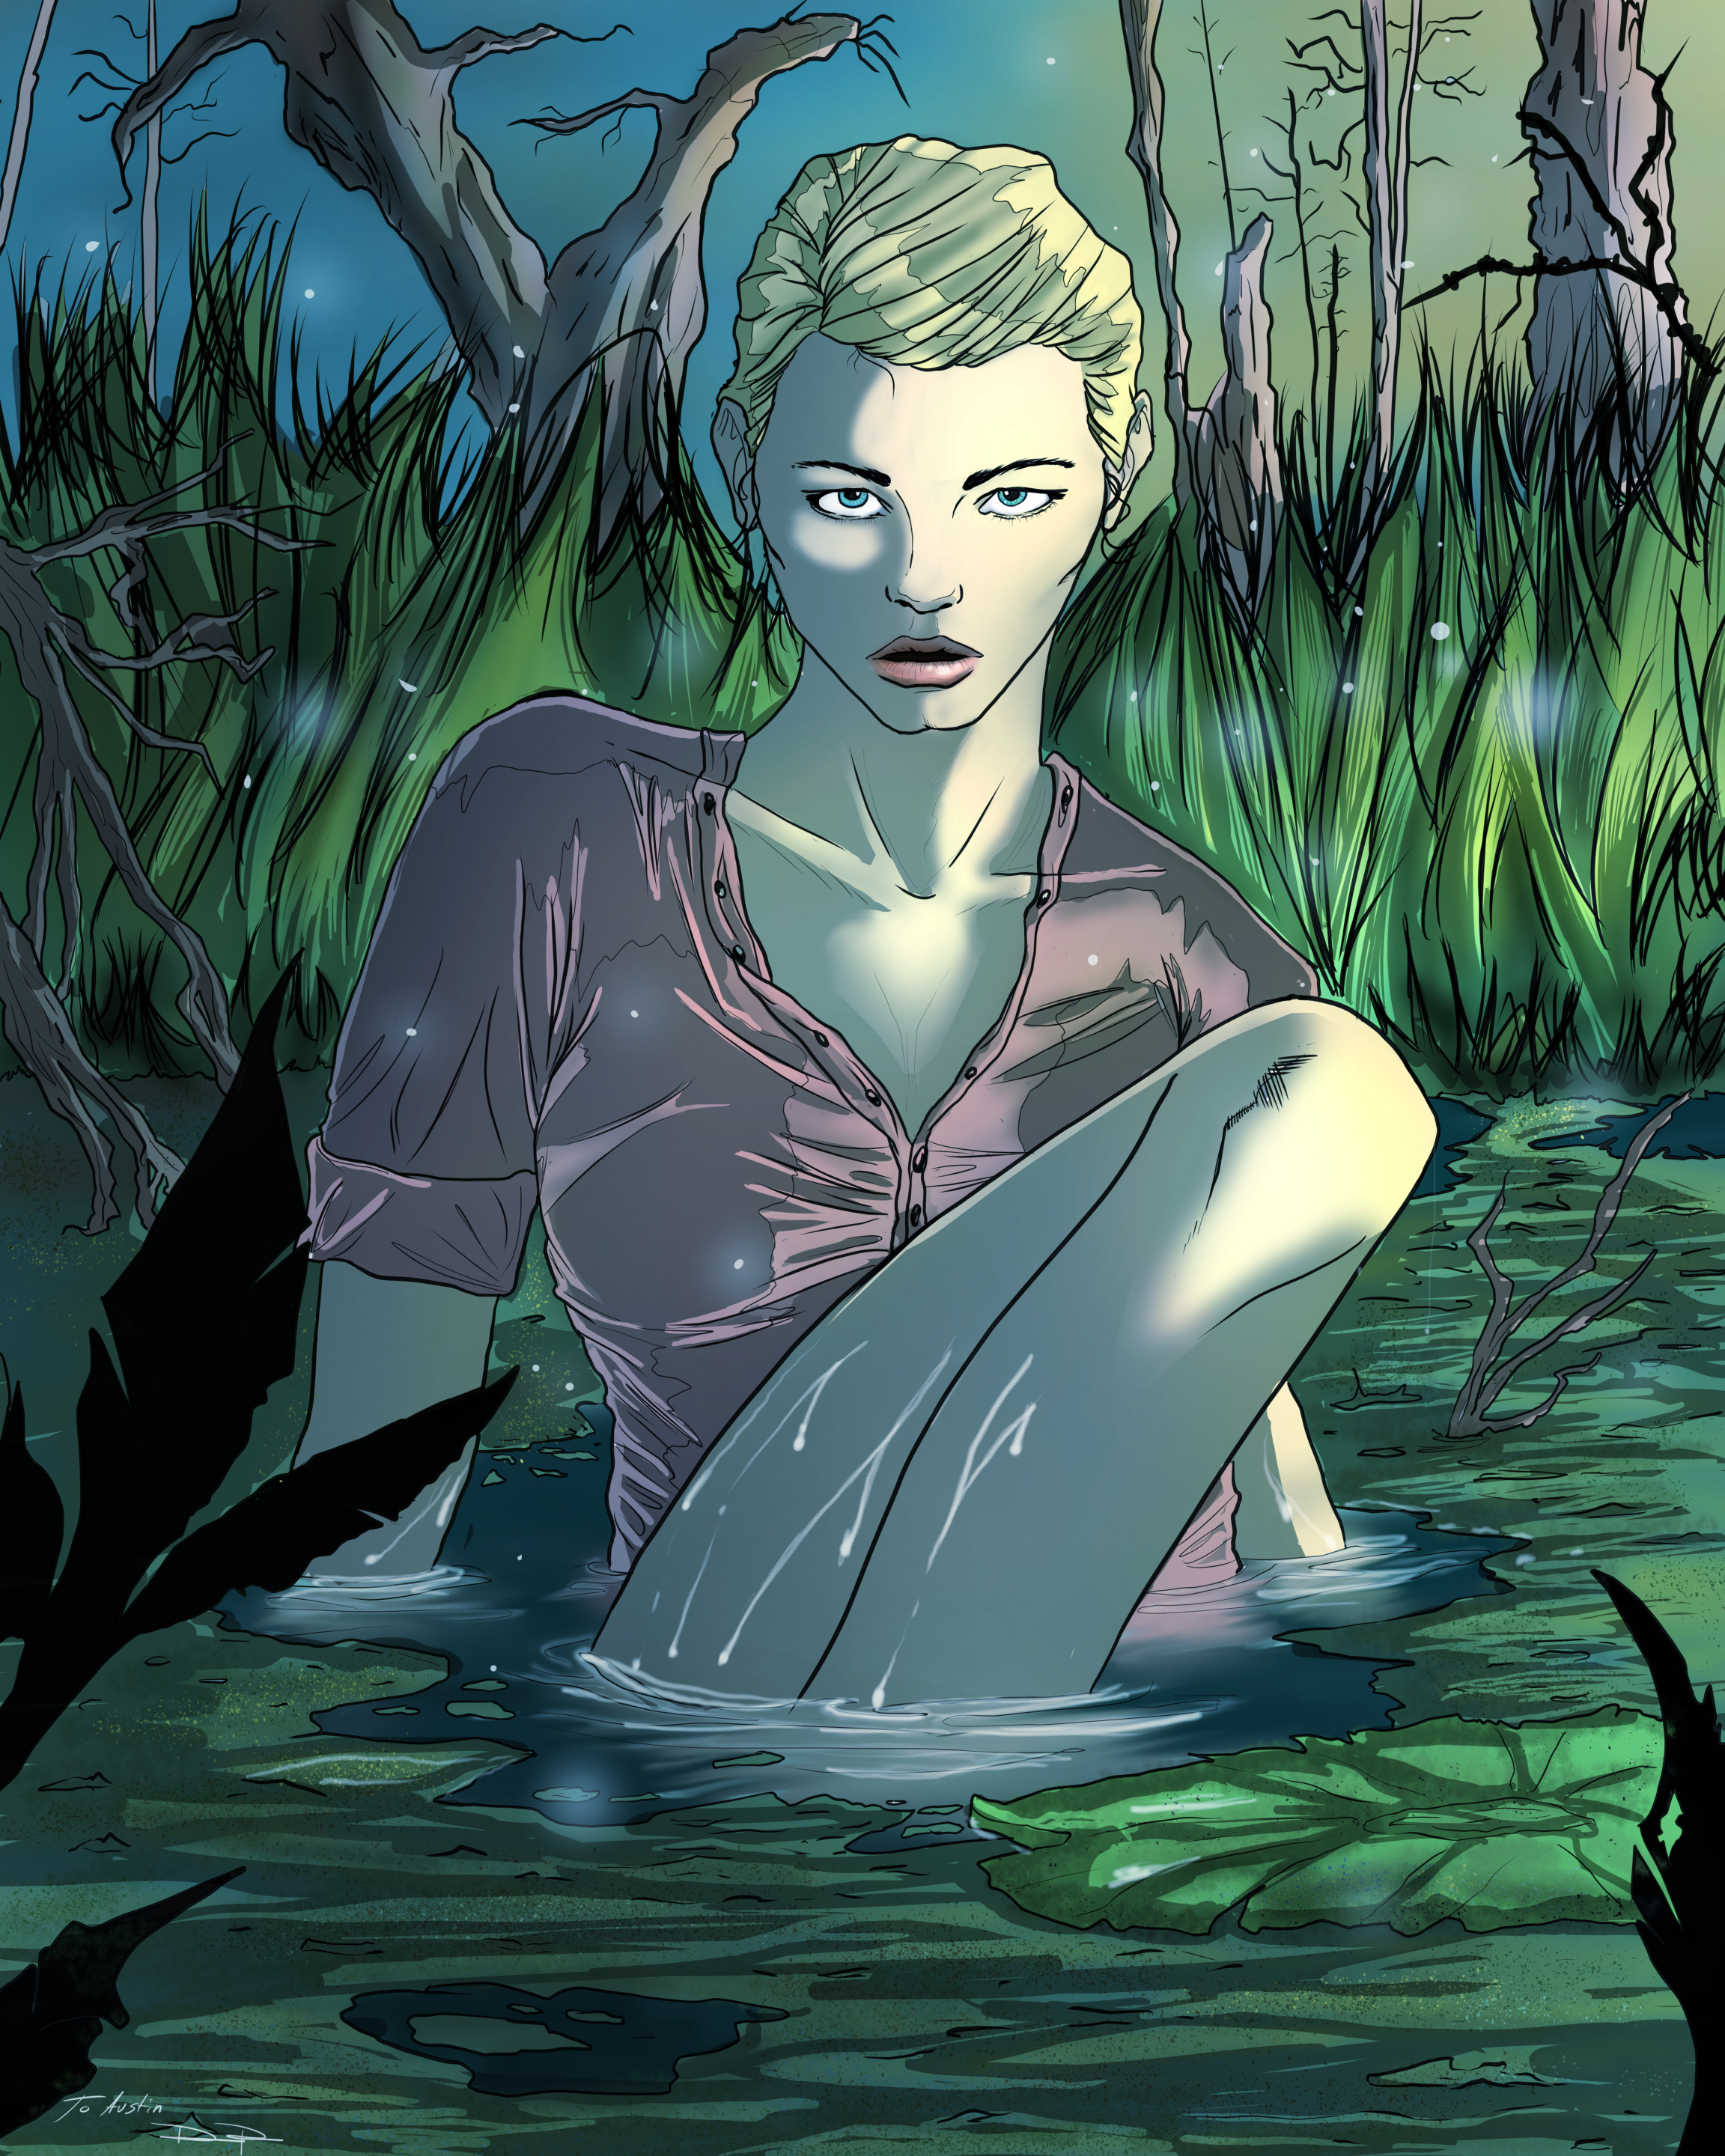 The Lady in the Water